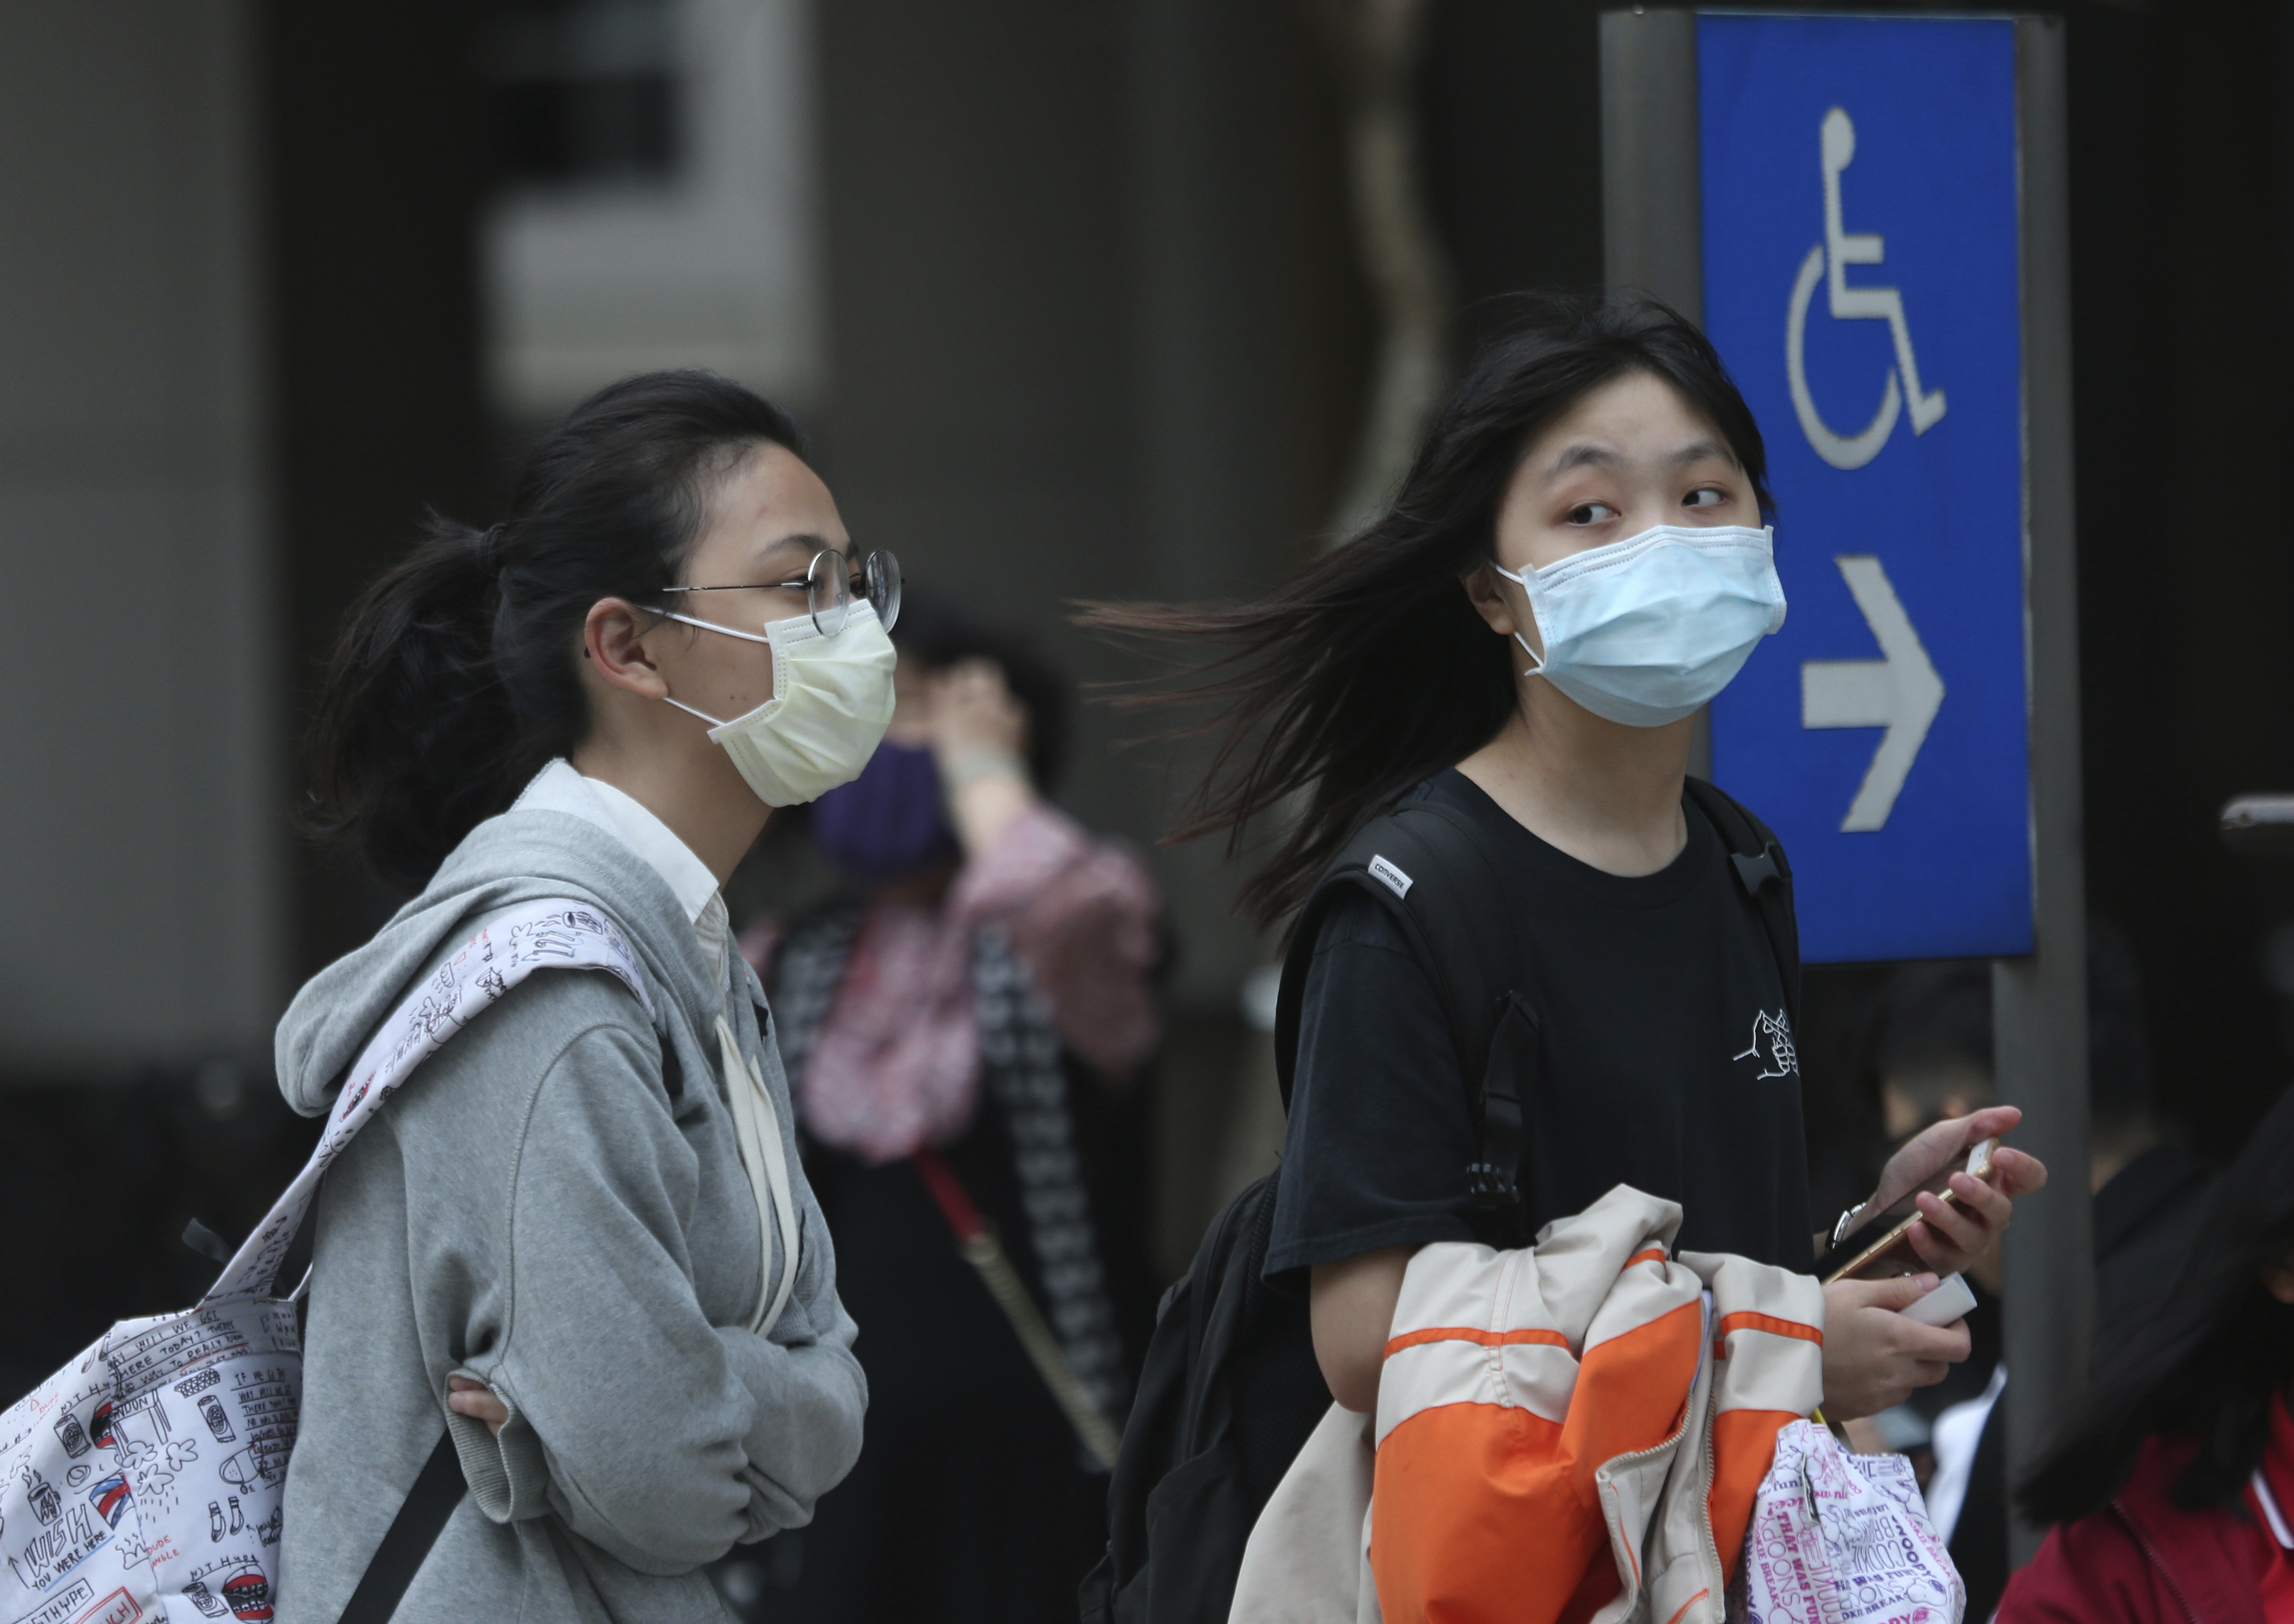 People wear face masks to protect against the spread of the coronavirus in Taipei, Taiwan.